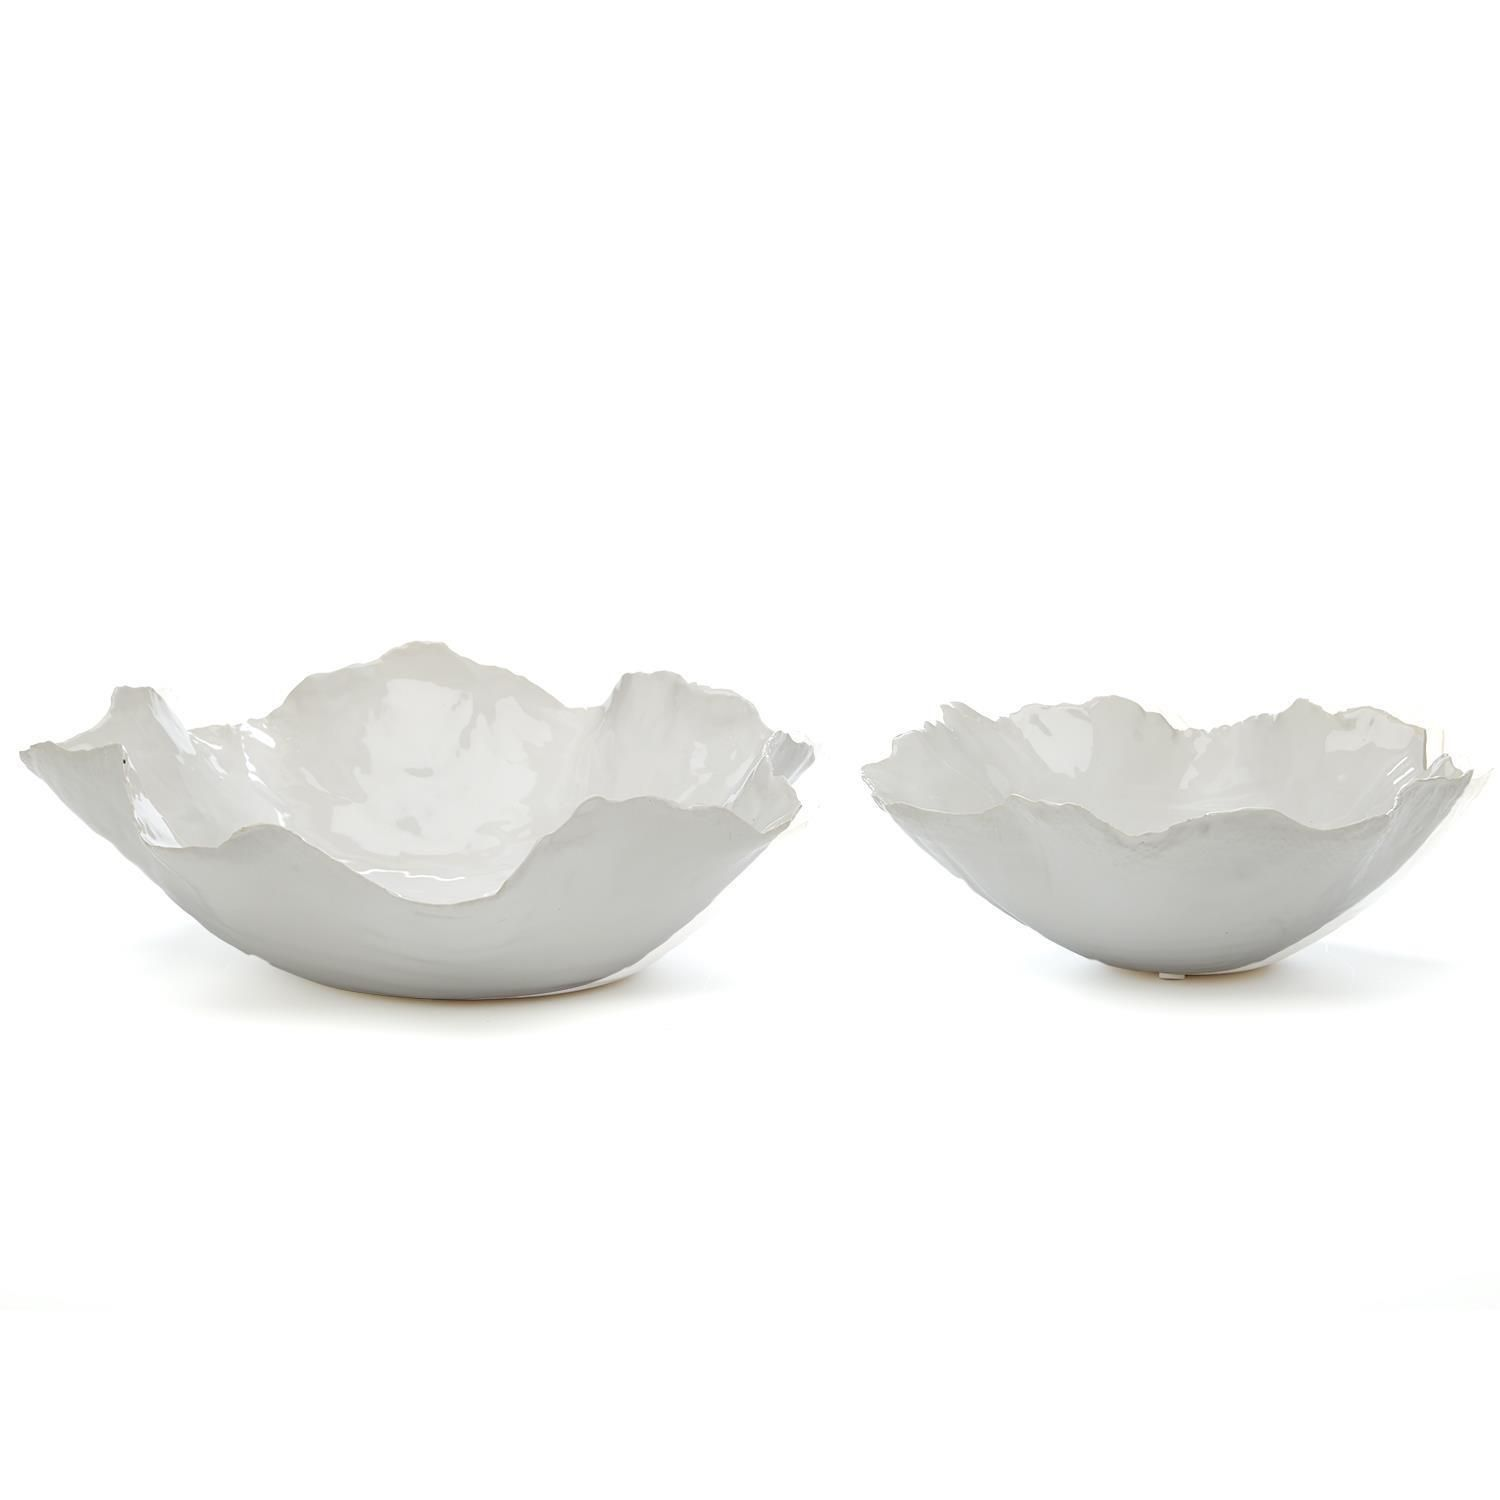 Set of 2 White Free Form Bowls - (Shipping Late Ap